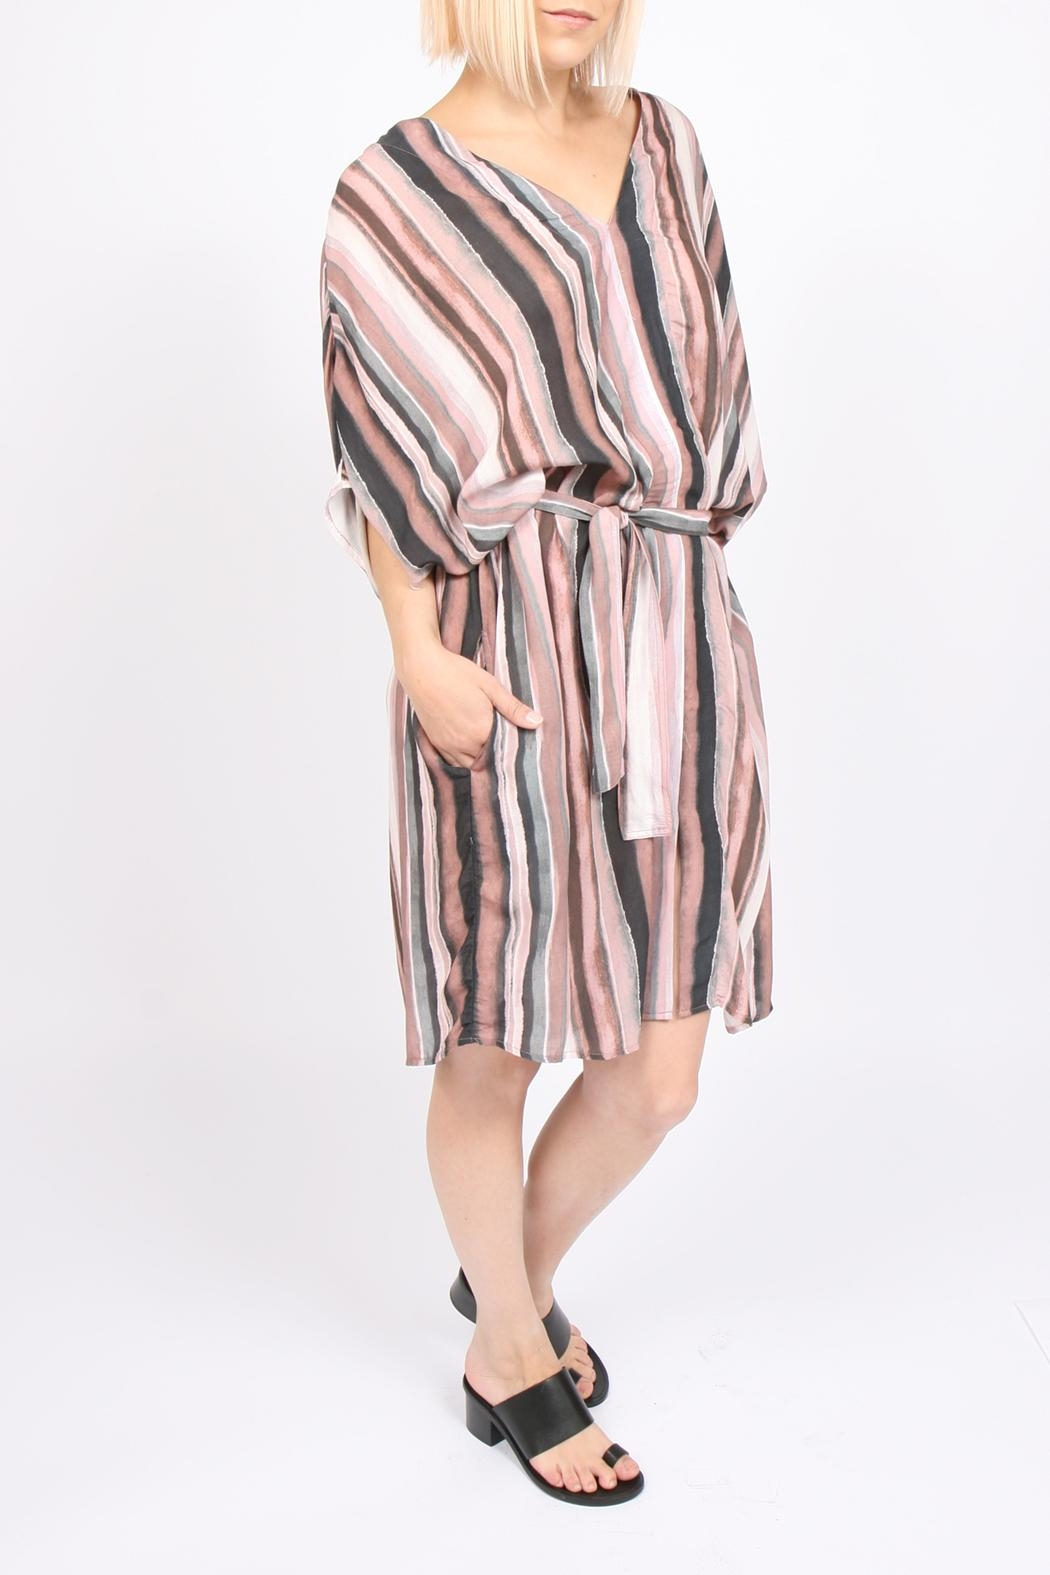 Tina + Jo Sadona Stripe Kaftan-Dress - Side Cropped Image